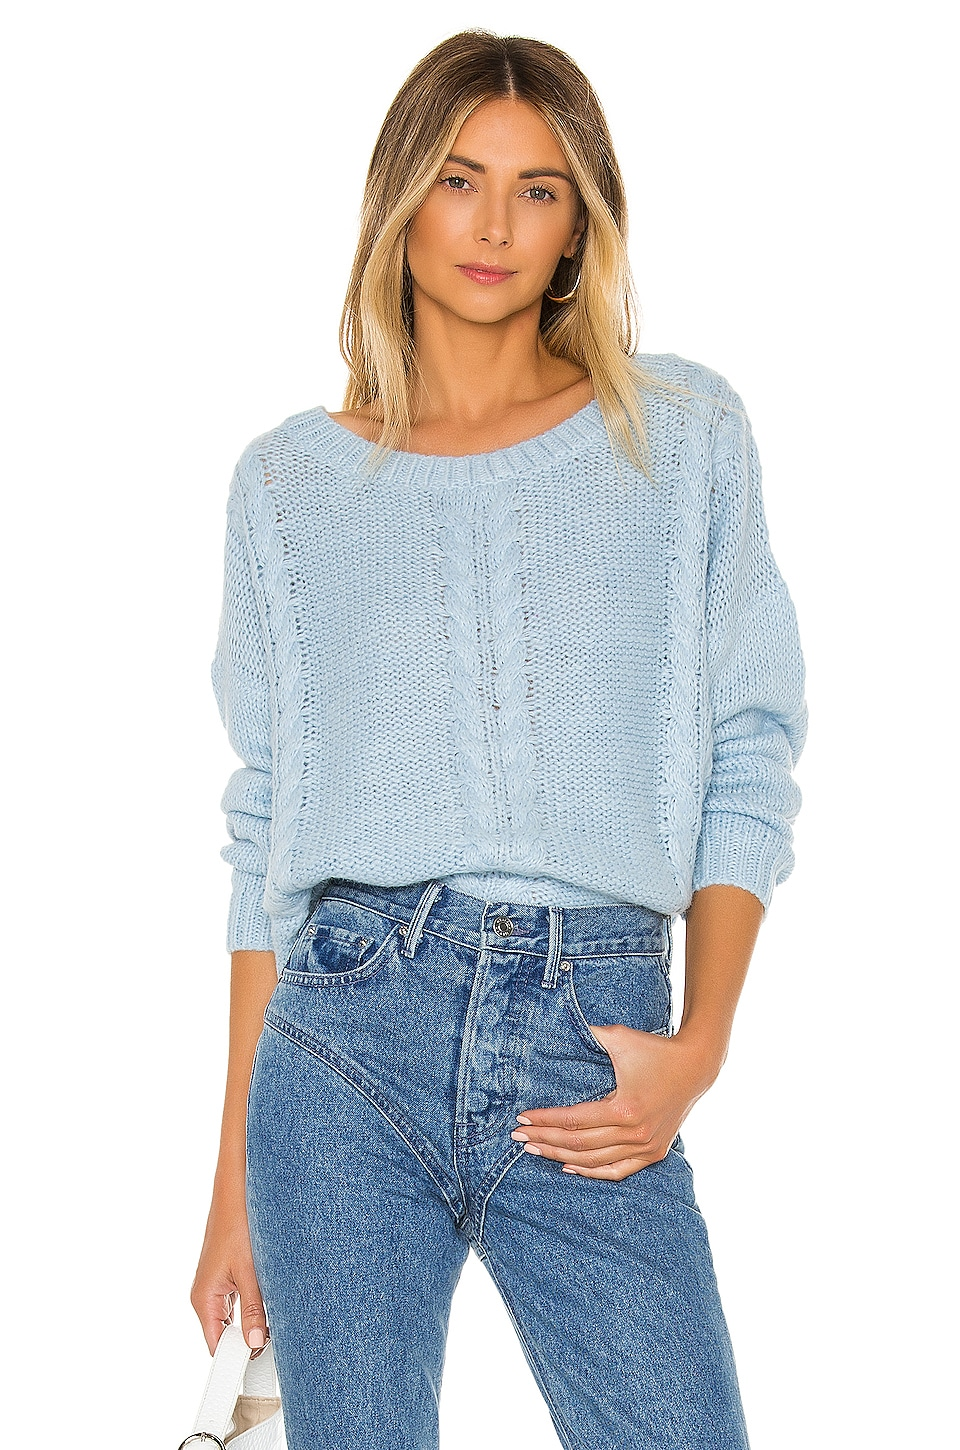 L'Academie Aruba Sweater in Aqua